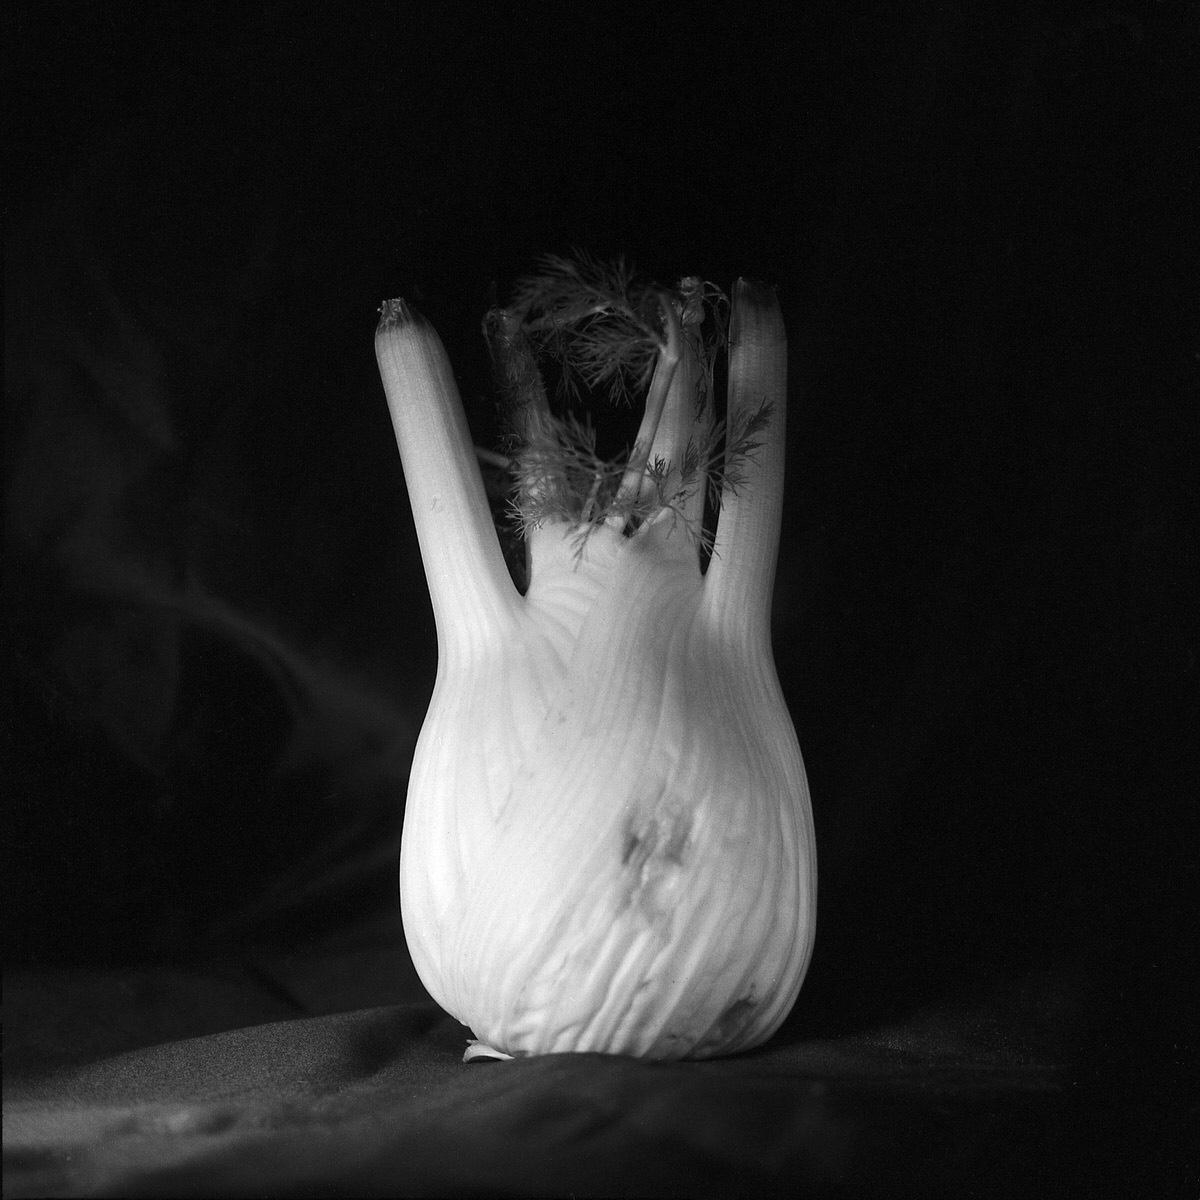 Fennel - Still Life Photography | Yashica MAT124 with Fomapan